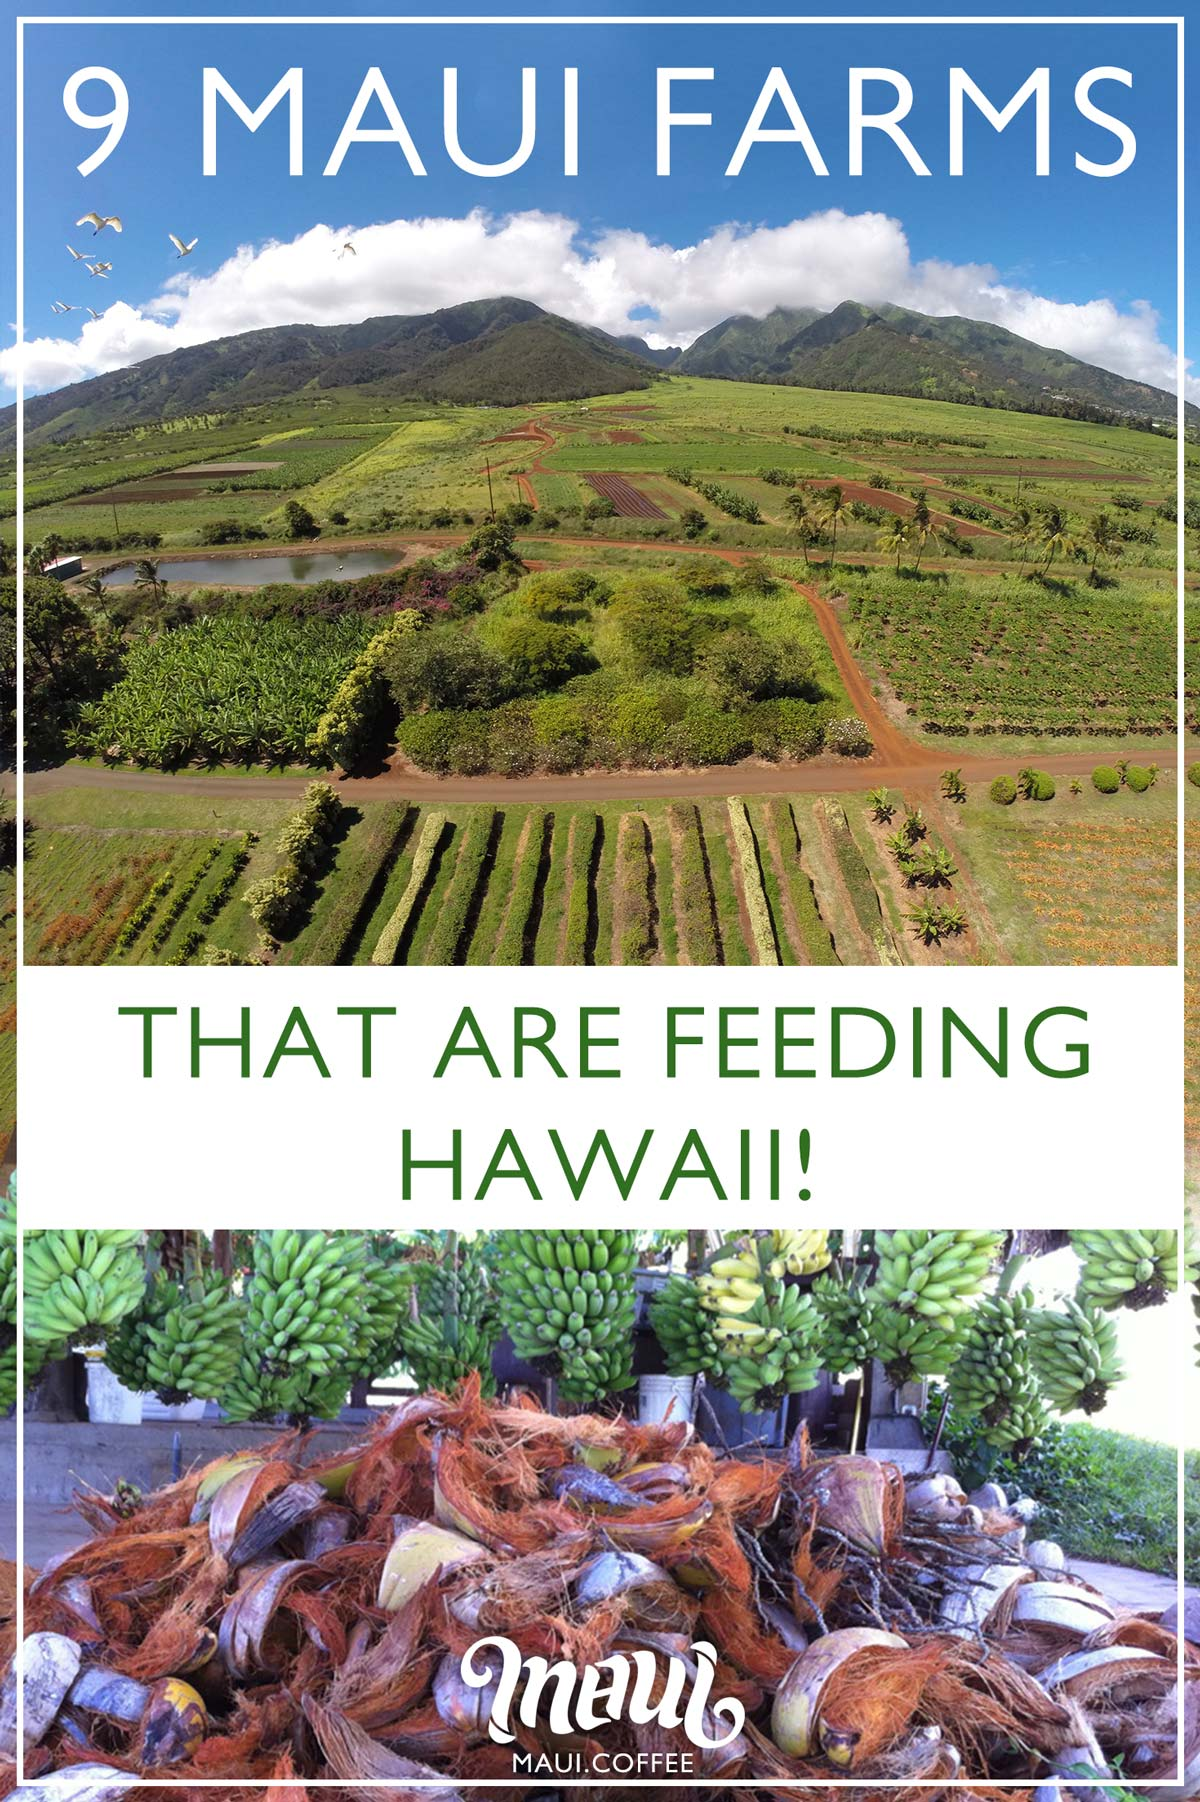 Maui Farms infographic